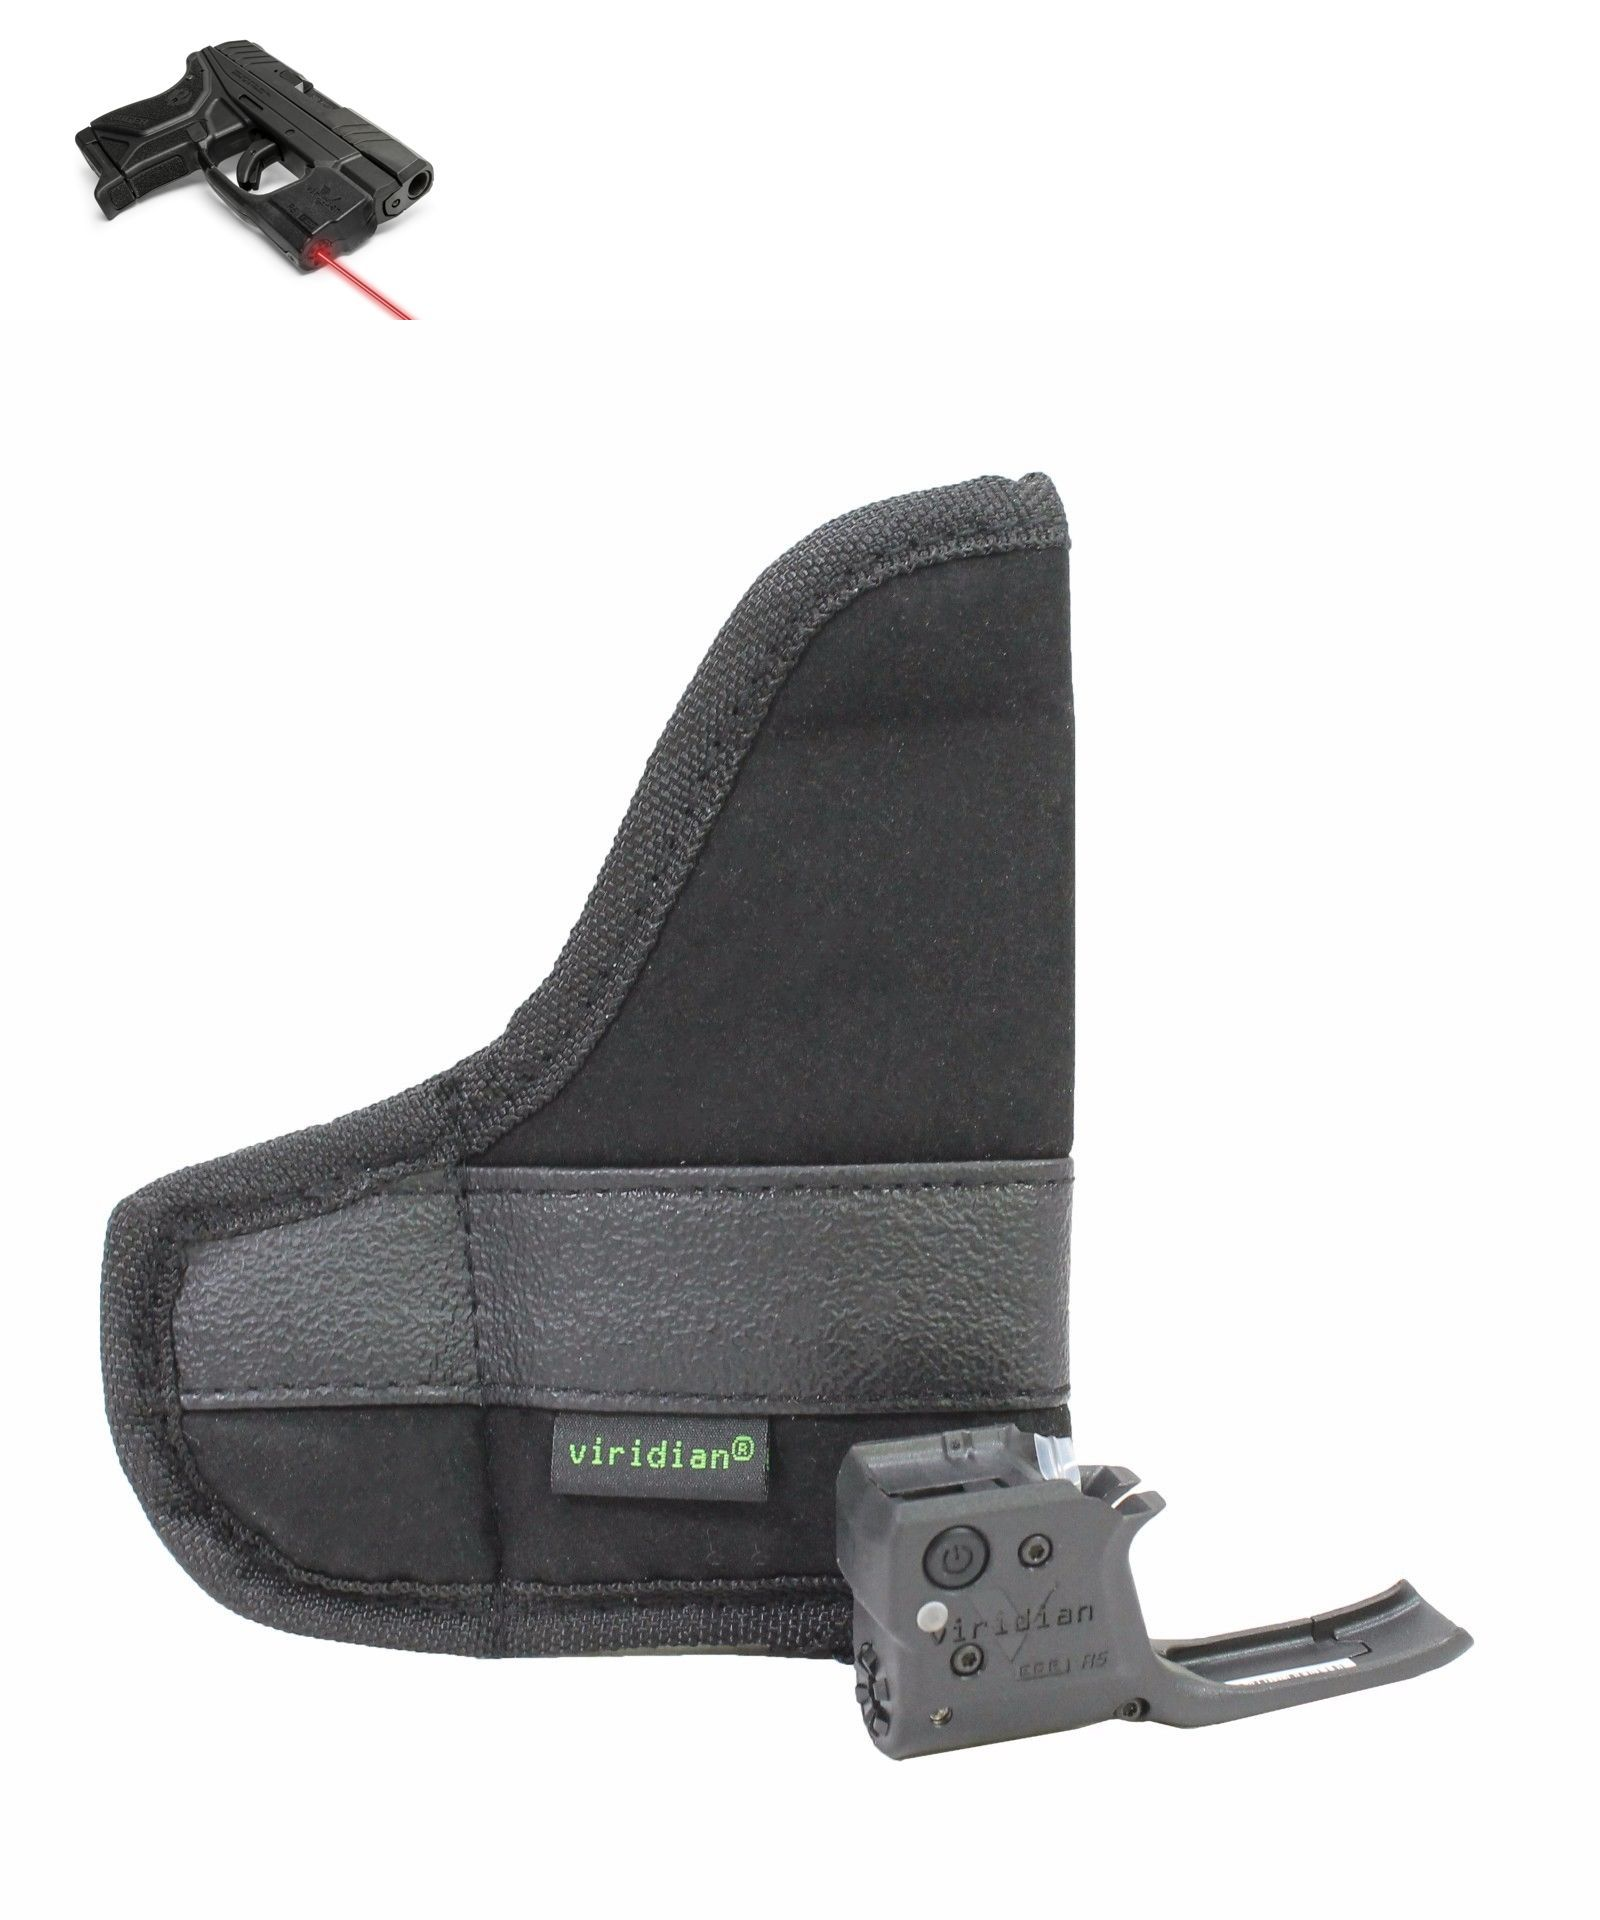 Lights and Lasers 106974: Viridian R5-R-Lcp2 Ruger Lcp Ii 2